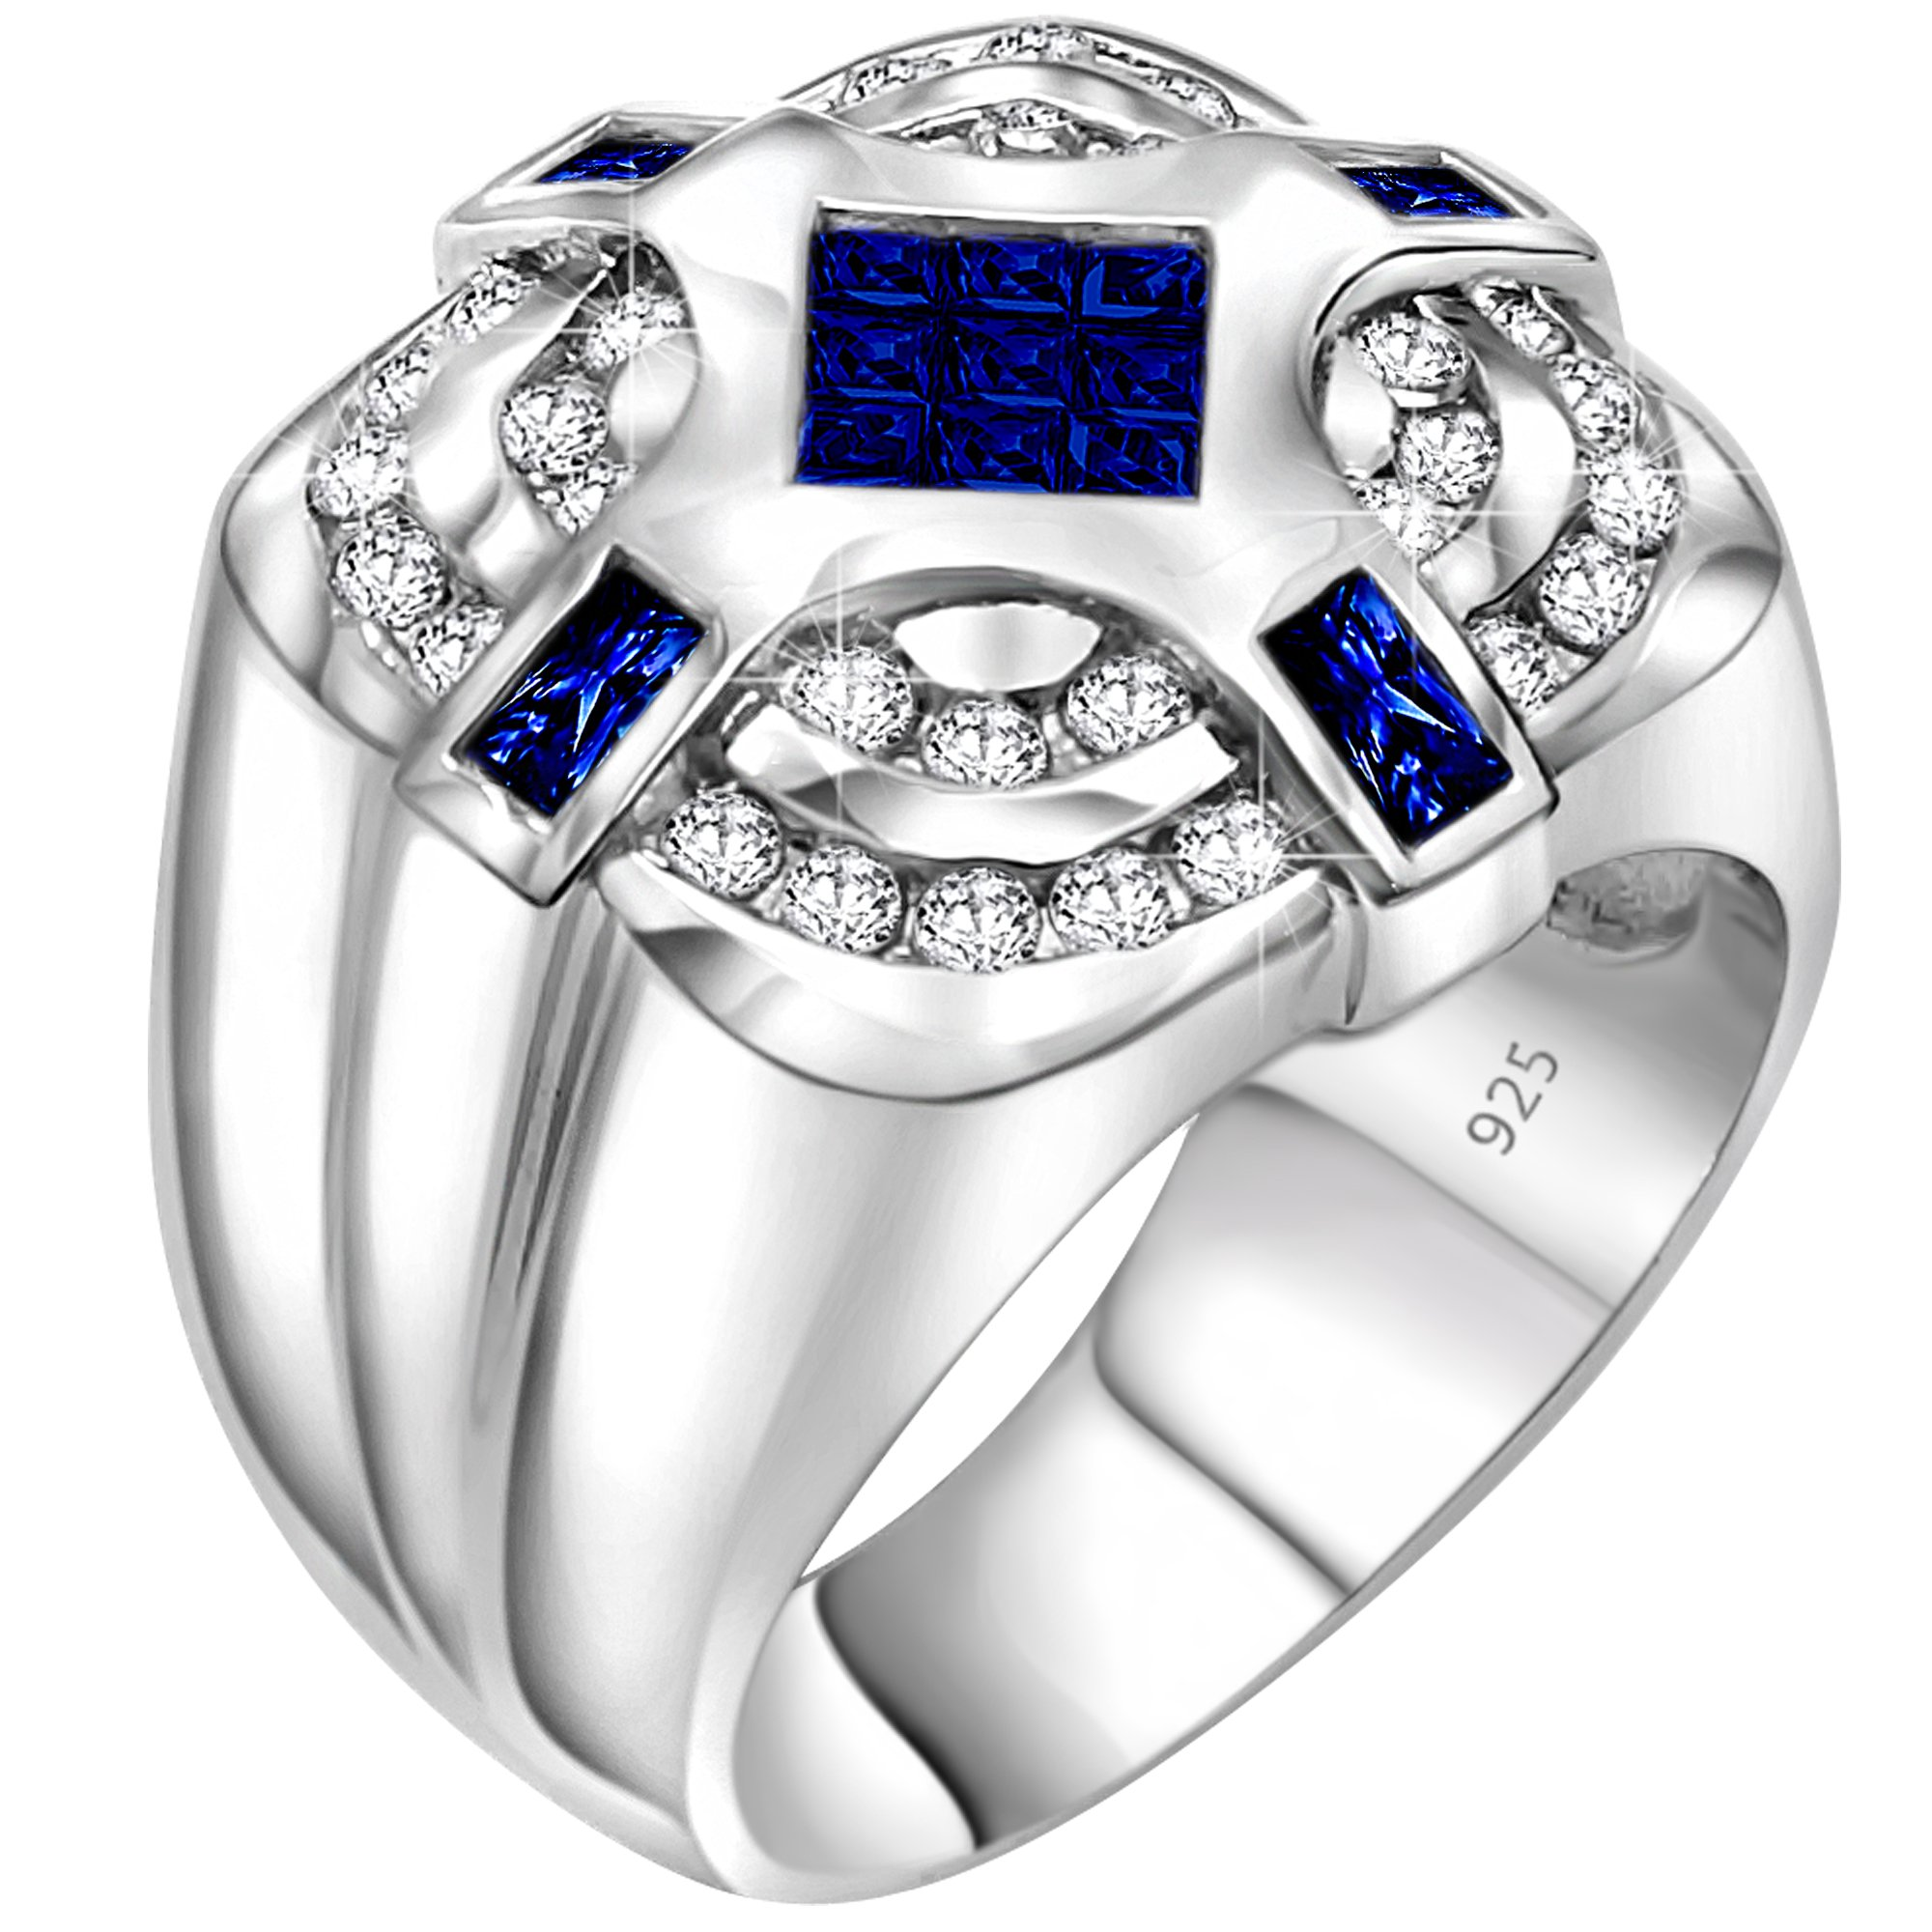 Men's Sterling Silver .925 Designer Ring with Invisible Set Center Dark Blue Cubic Zirconia (CZ) Stone Surrounded by 36 CZ Stones, Platinum Plated Jewelry (10)